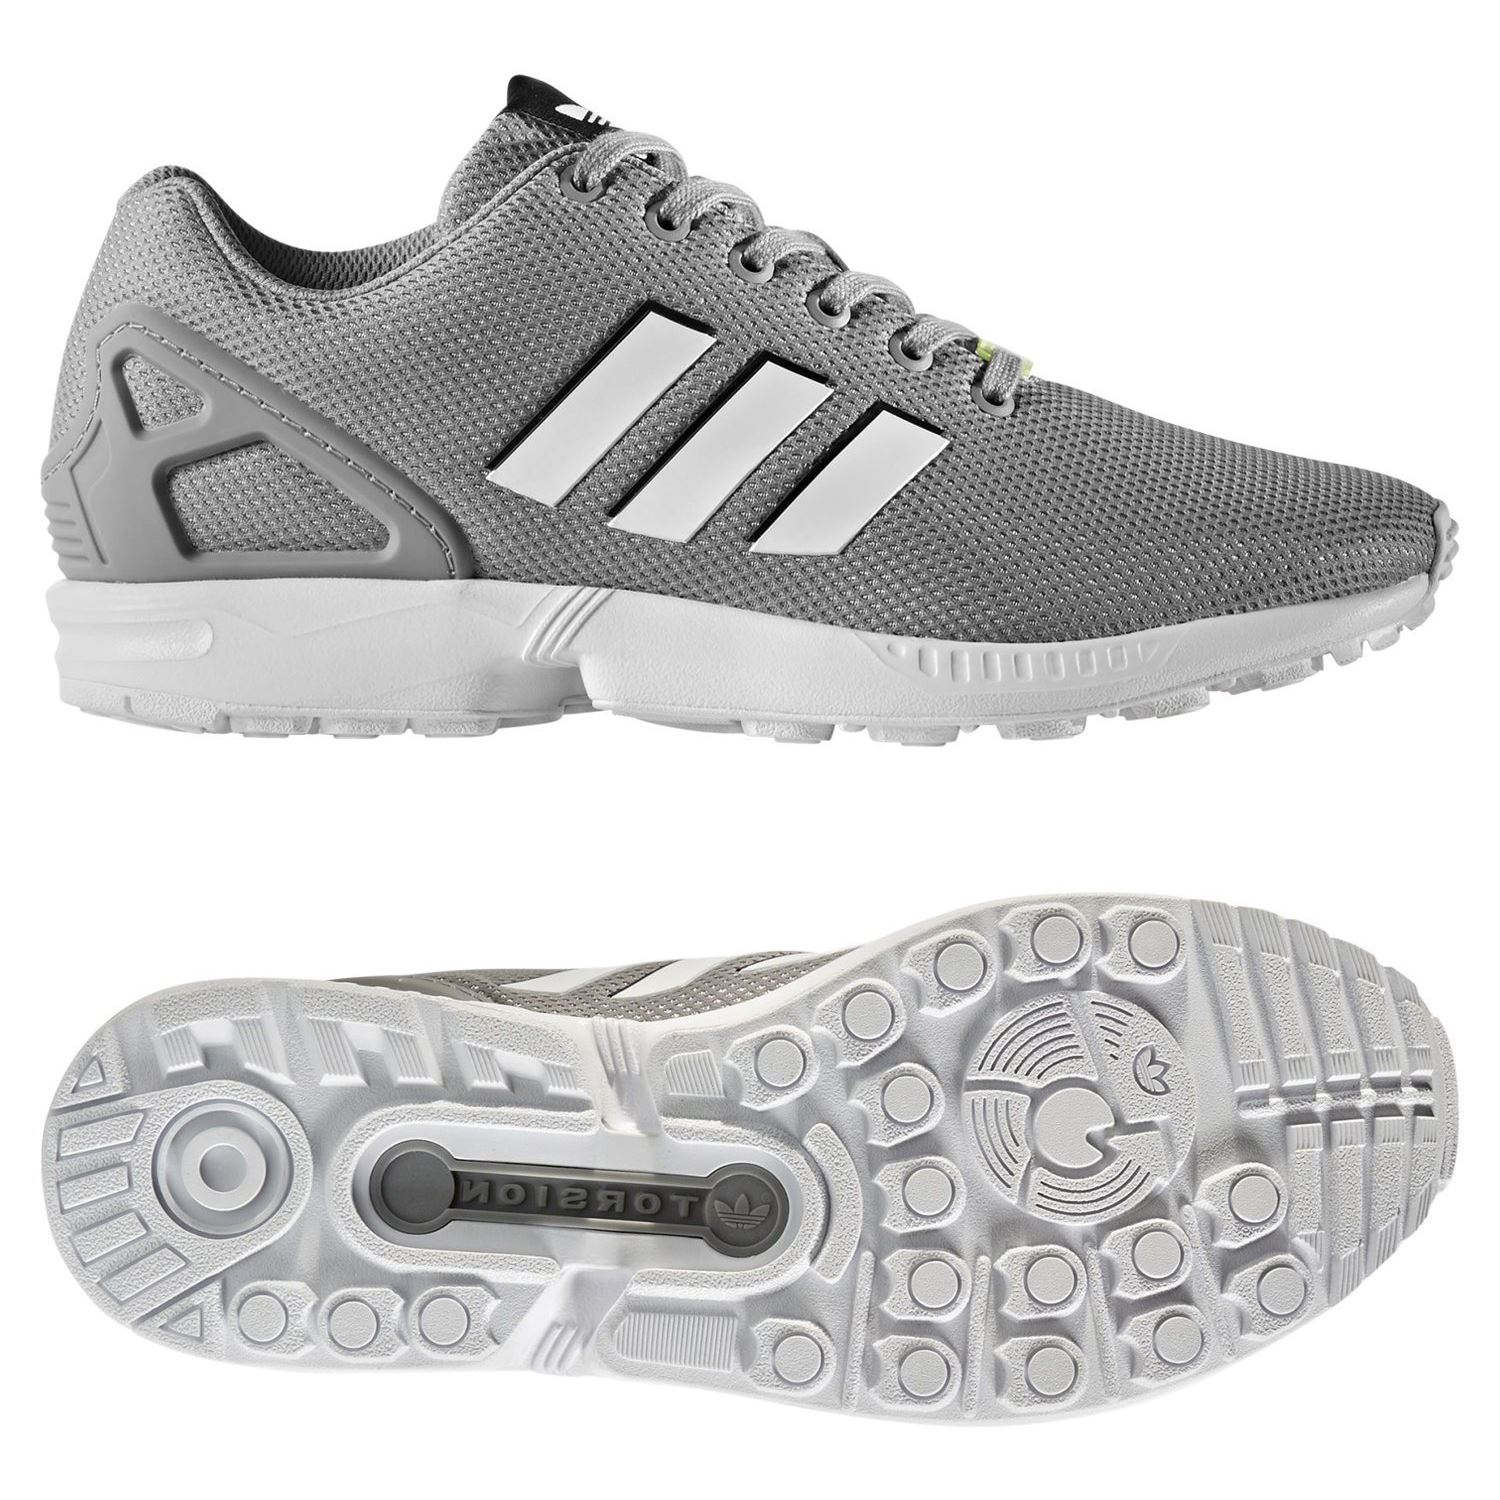 the best attitude 0df56 2f567 Details about adidas ORIGINALS MEN S ZX FLUX TRAINERS GREY SNEAKERS SHOES  RETRO RUNNING